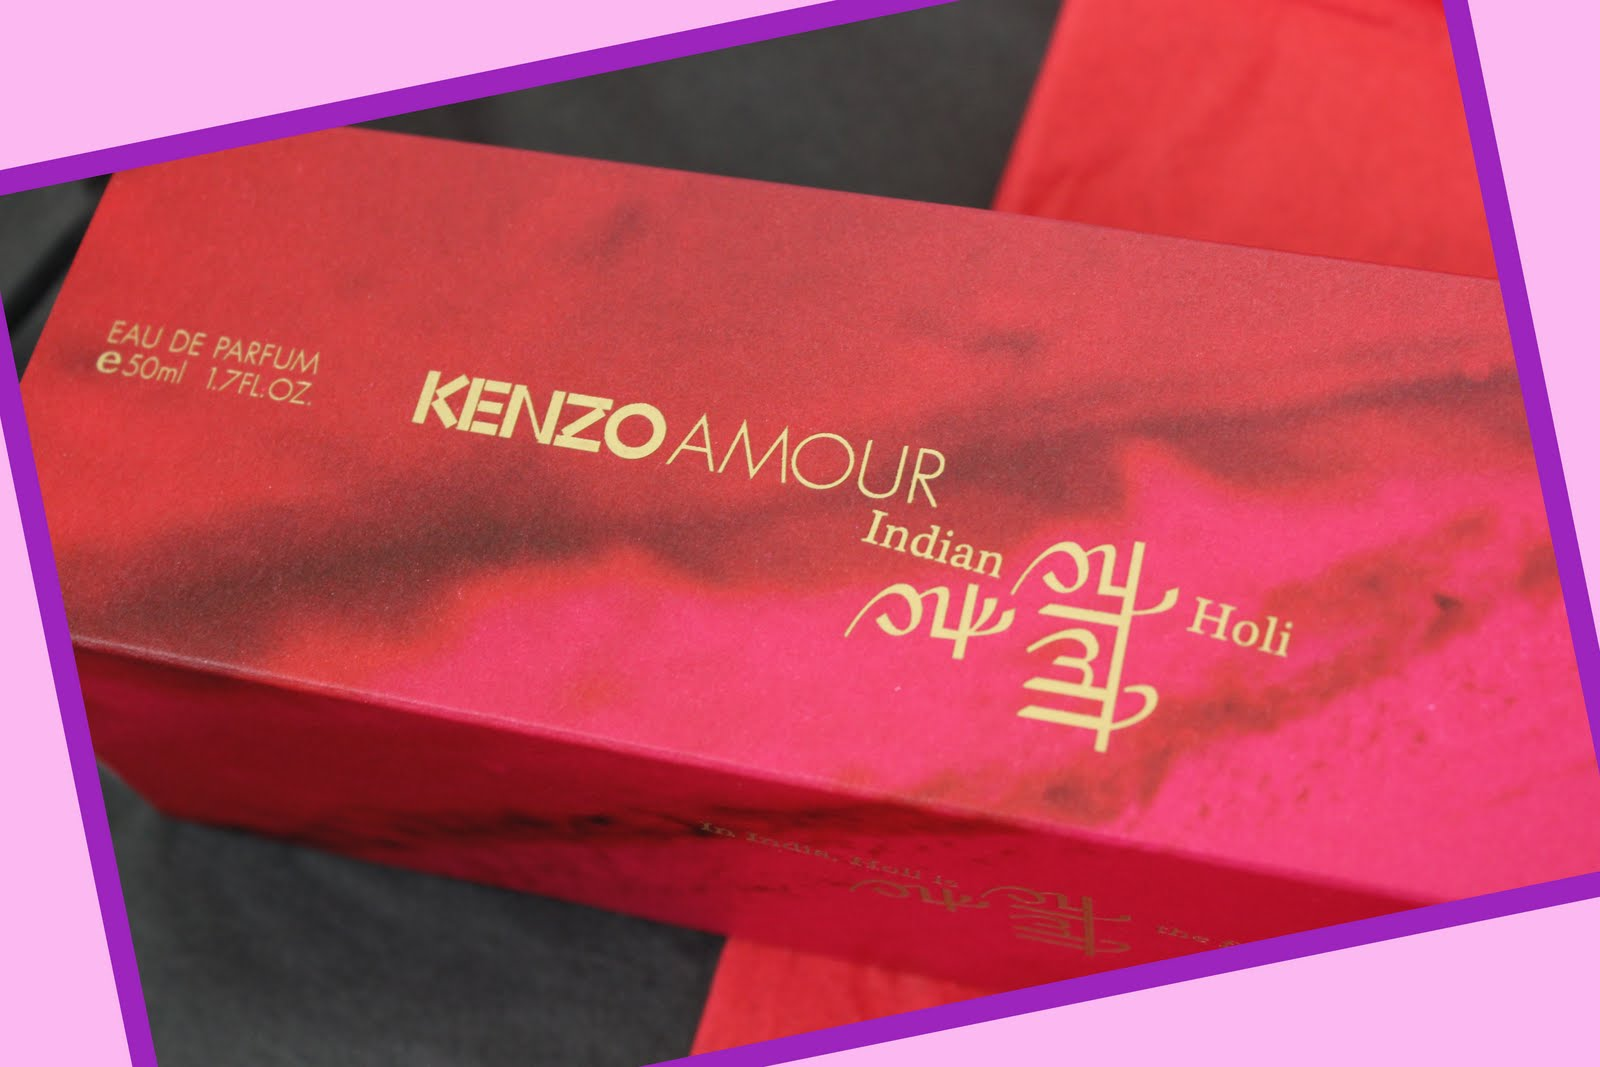 Sensory Expeditions- Journey to India with Kenzo Amour's Indian Holi